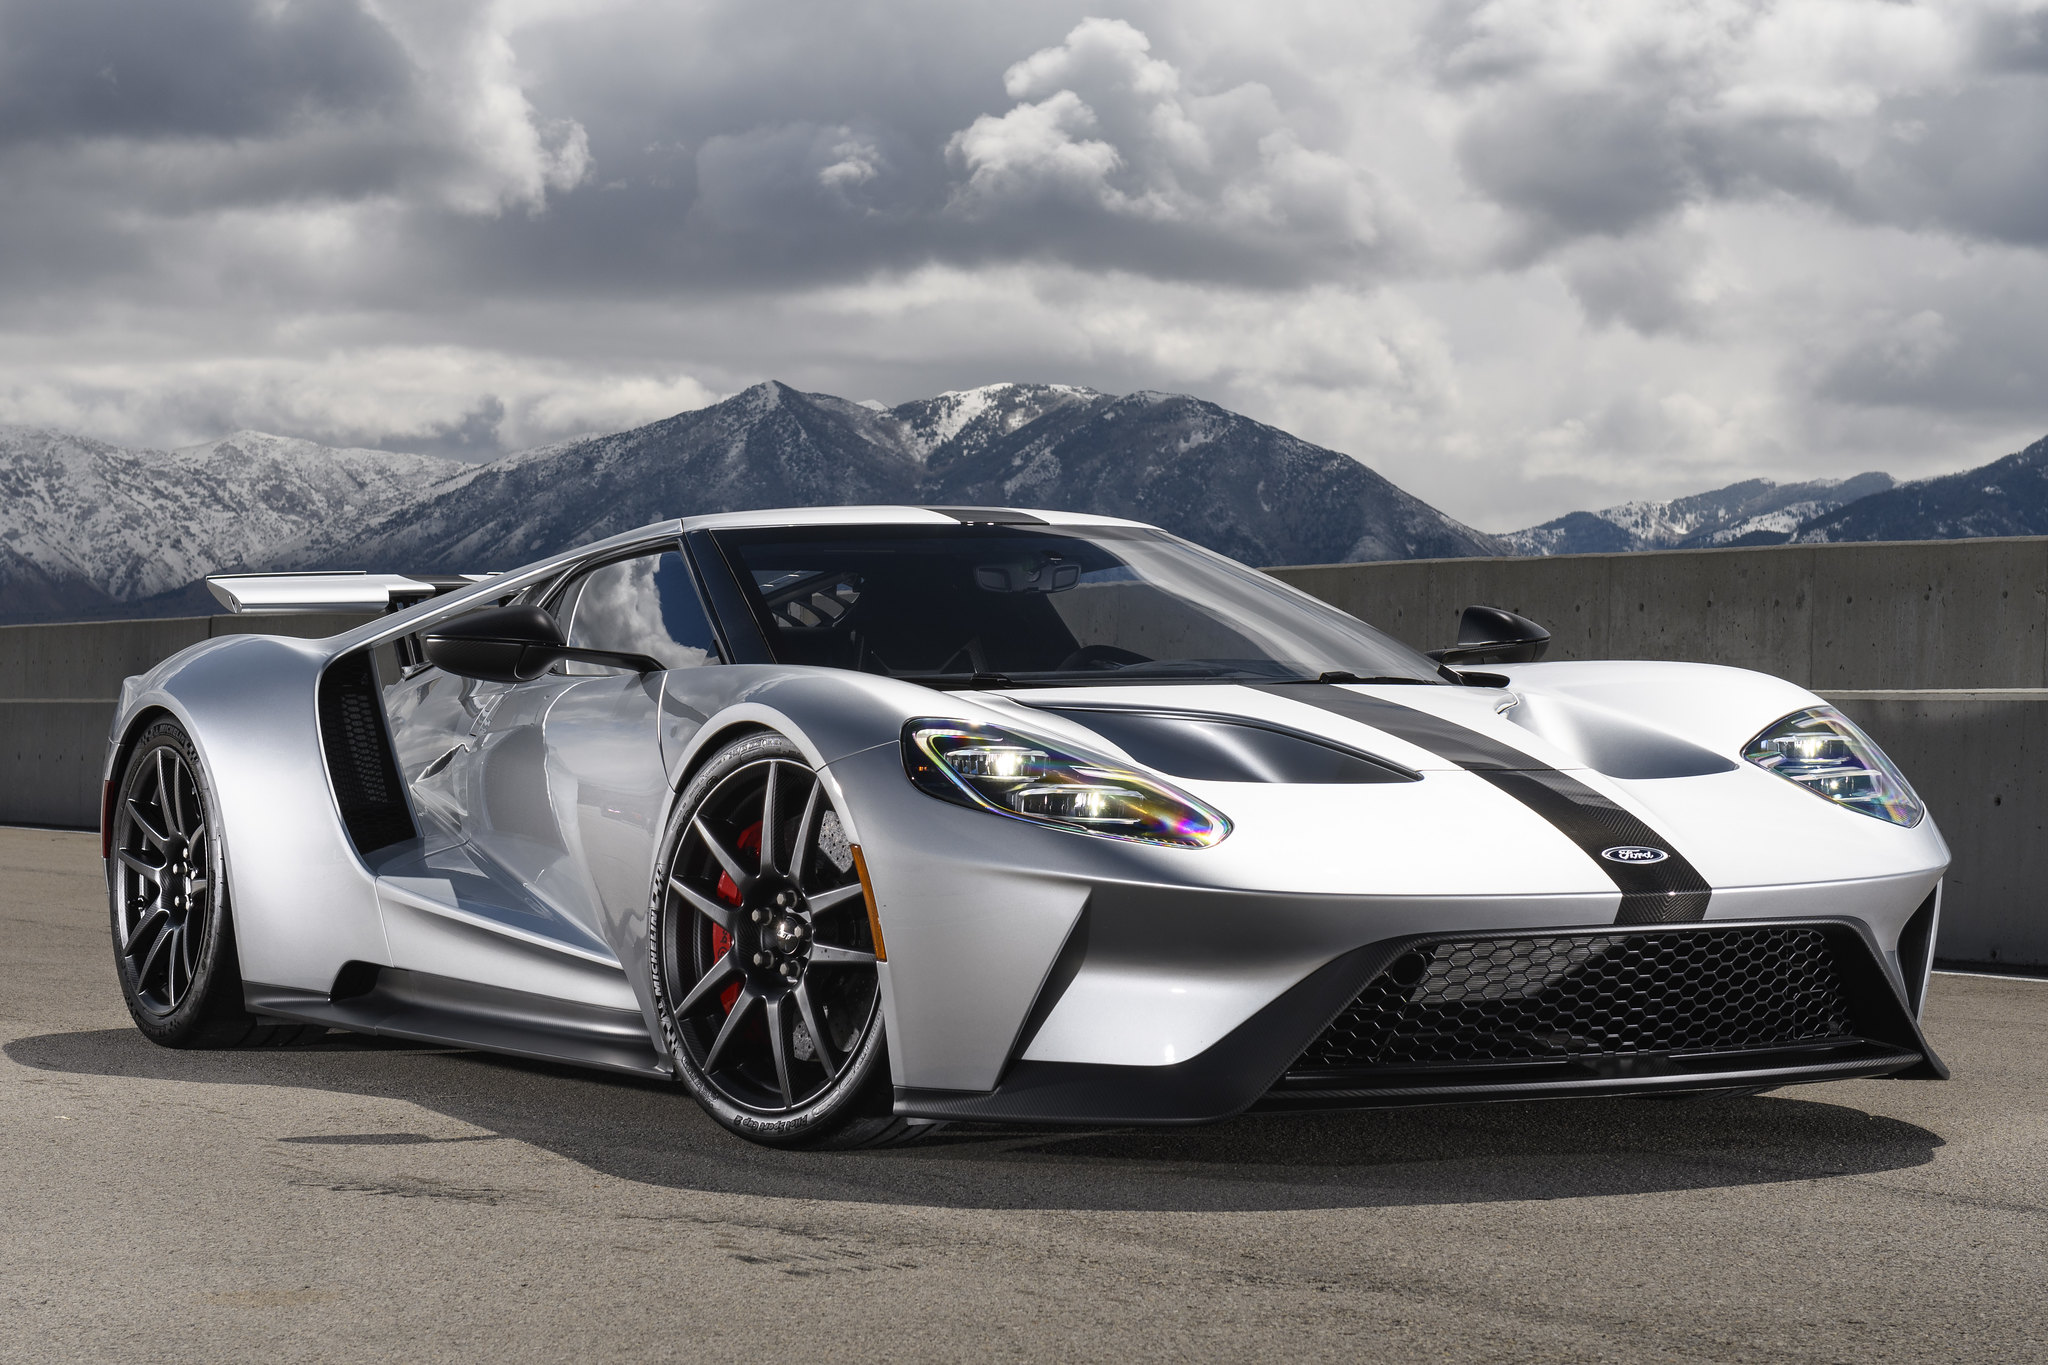 2017 Ford GT mega-gallery